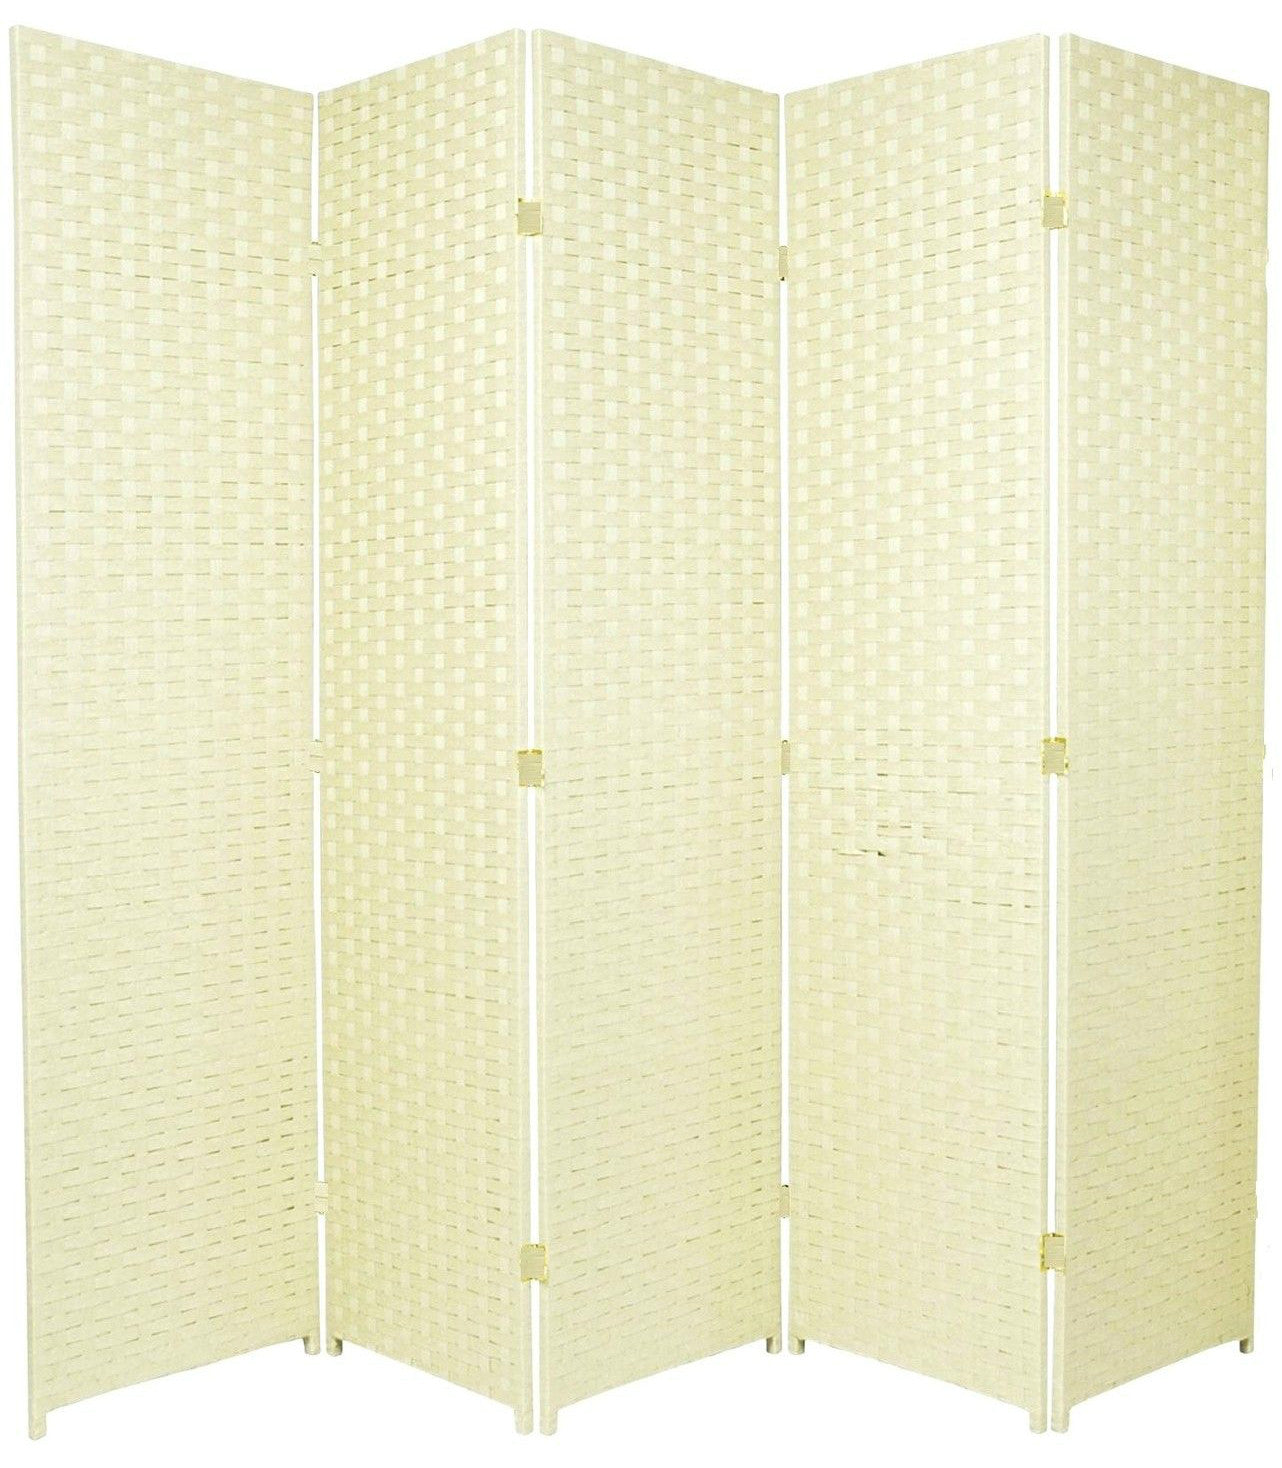 Entwine Ivory Colour Room Divider Screen - 5 Panel